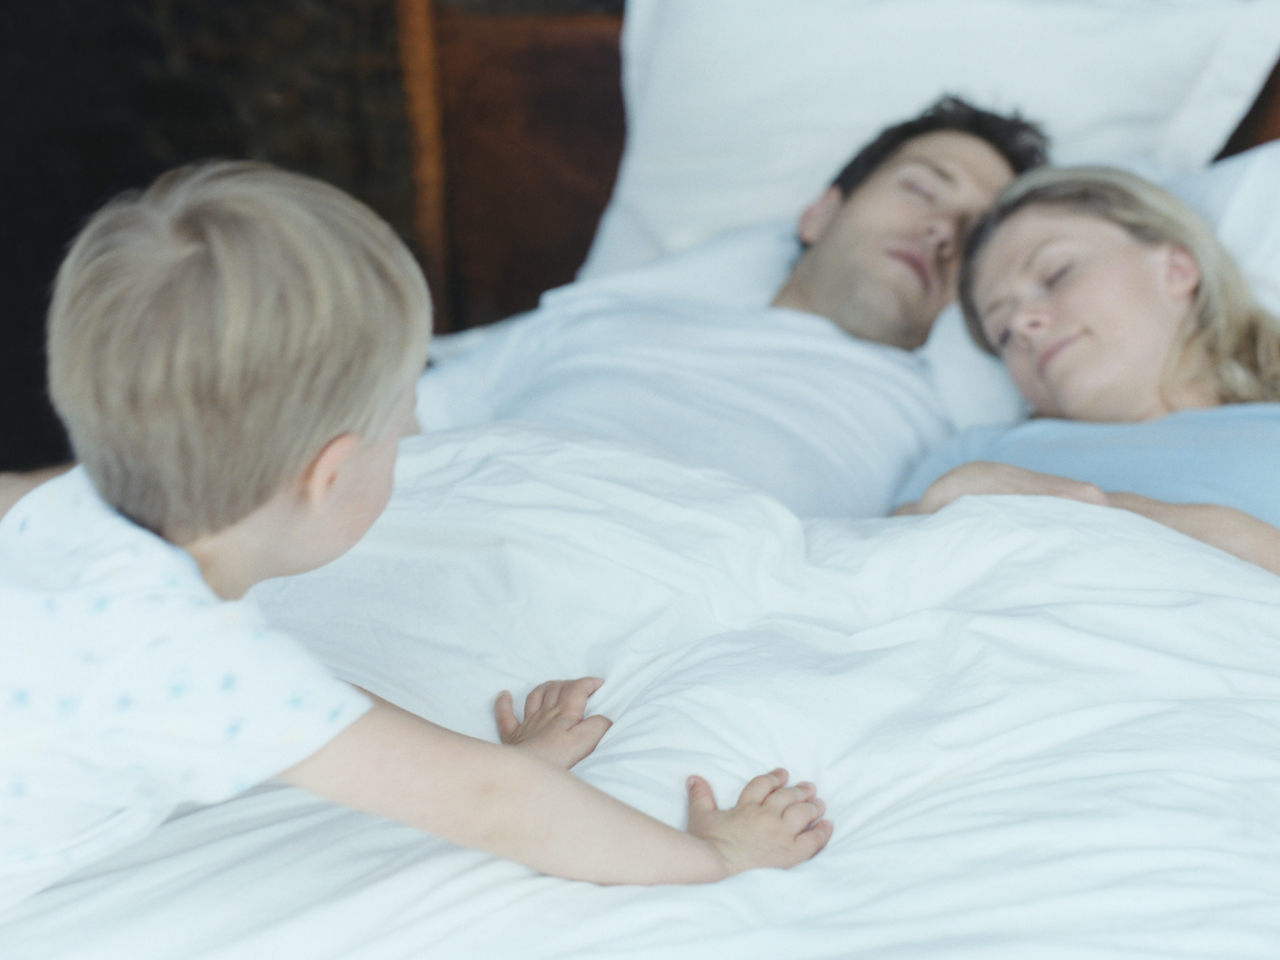 Parents not sleep deprived? We beg to differzzzz - TODAY.com